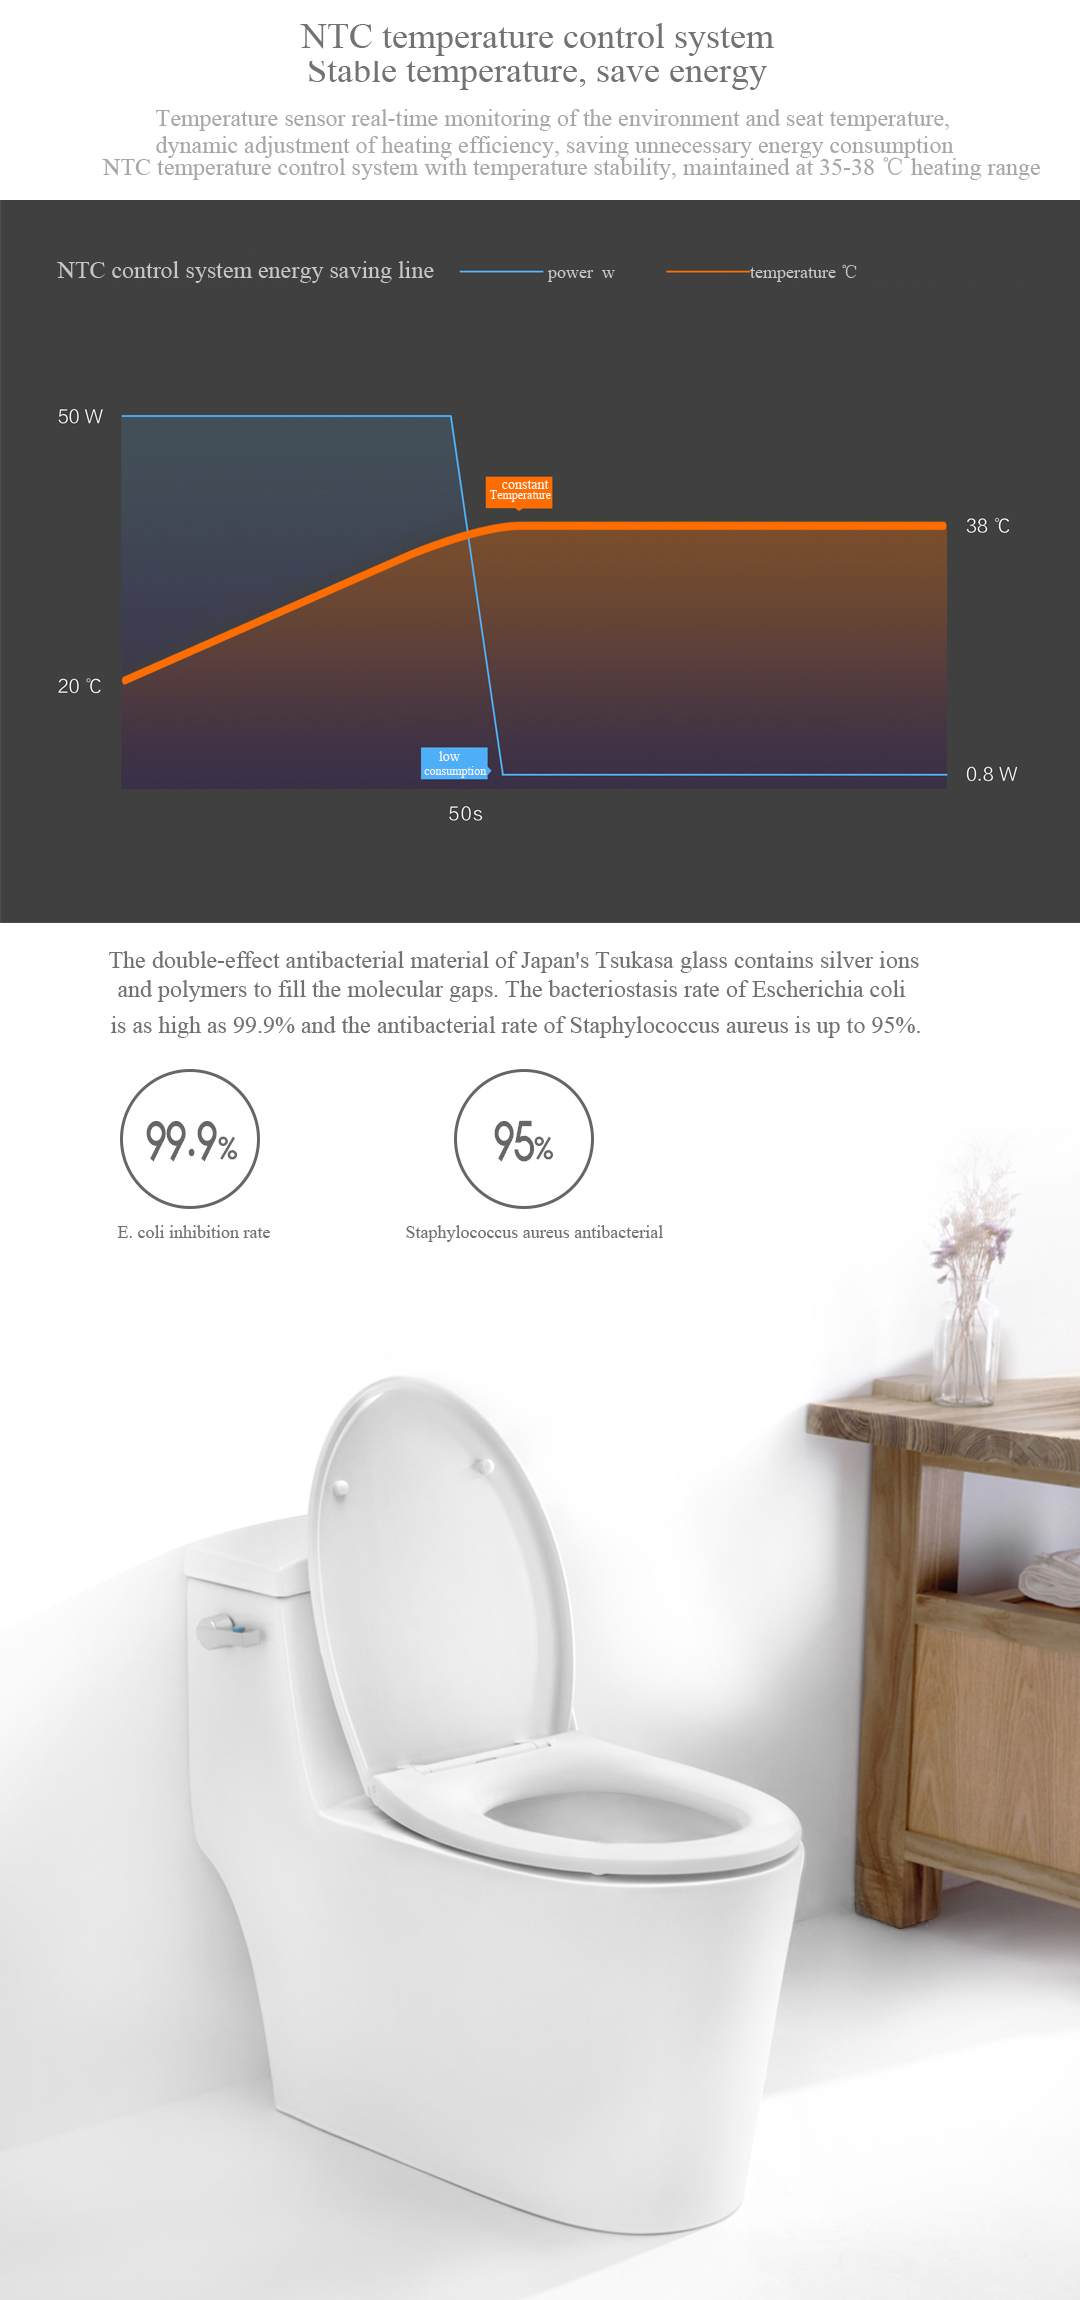 Helpful Xiaomi Mi Small Whale Washing Intelligent Temperature App Smart Toilet Cover Seat With Led Night Light Ipx4 Waterproof Comfortable Feel Home Appliances